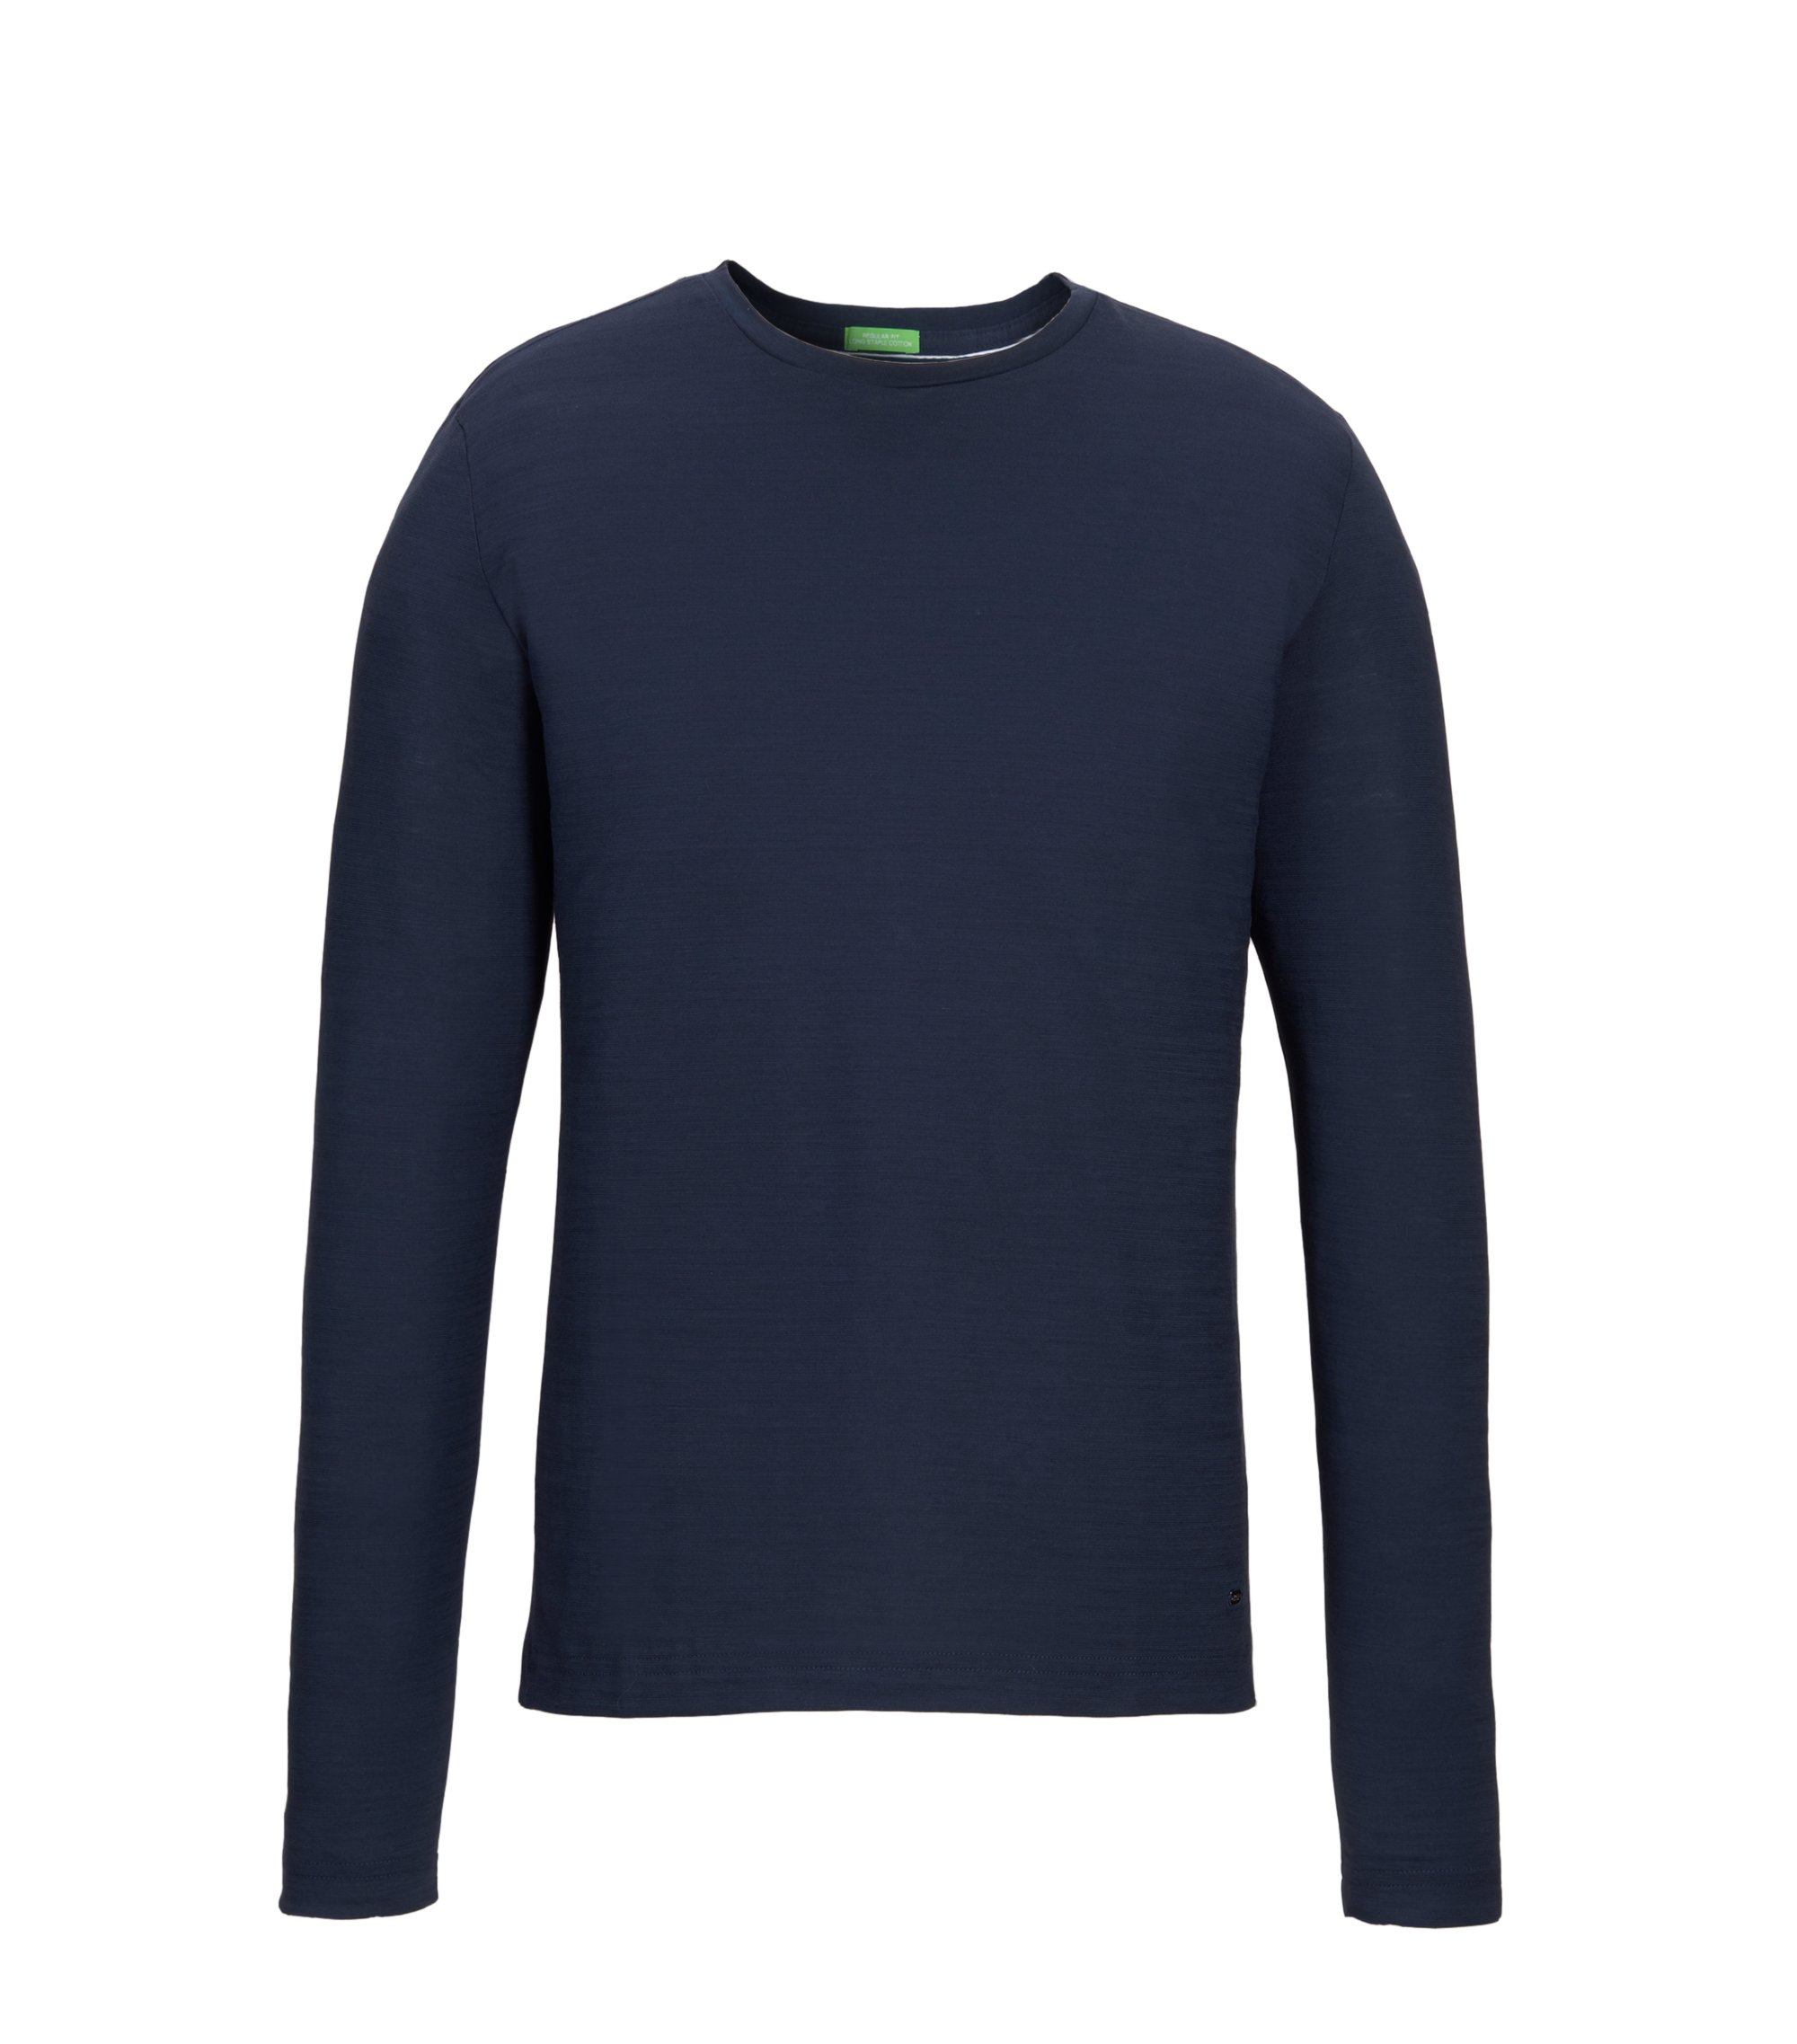 Cotton Long Sleeve T-Shirt | Sessari US, Dark Blue